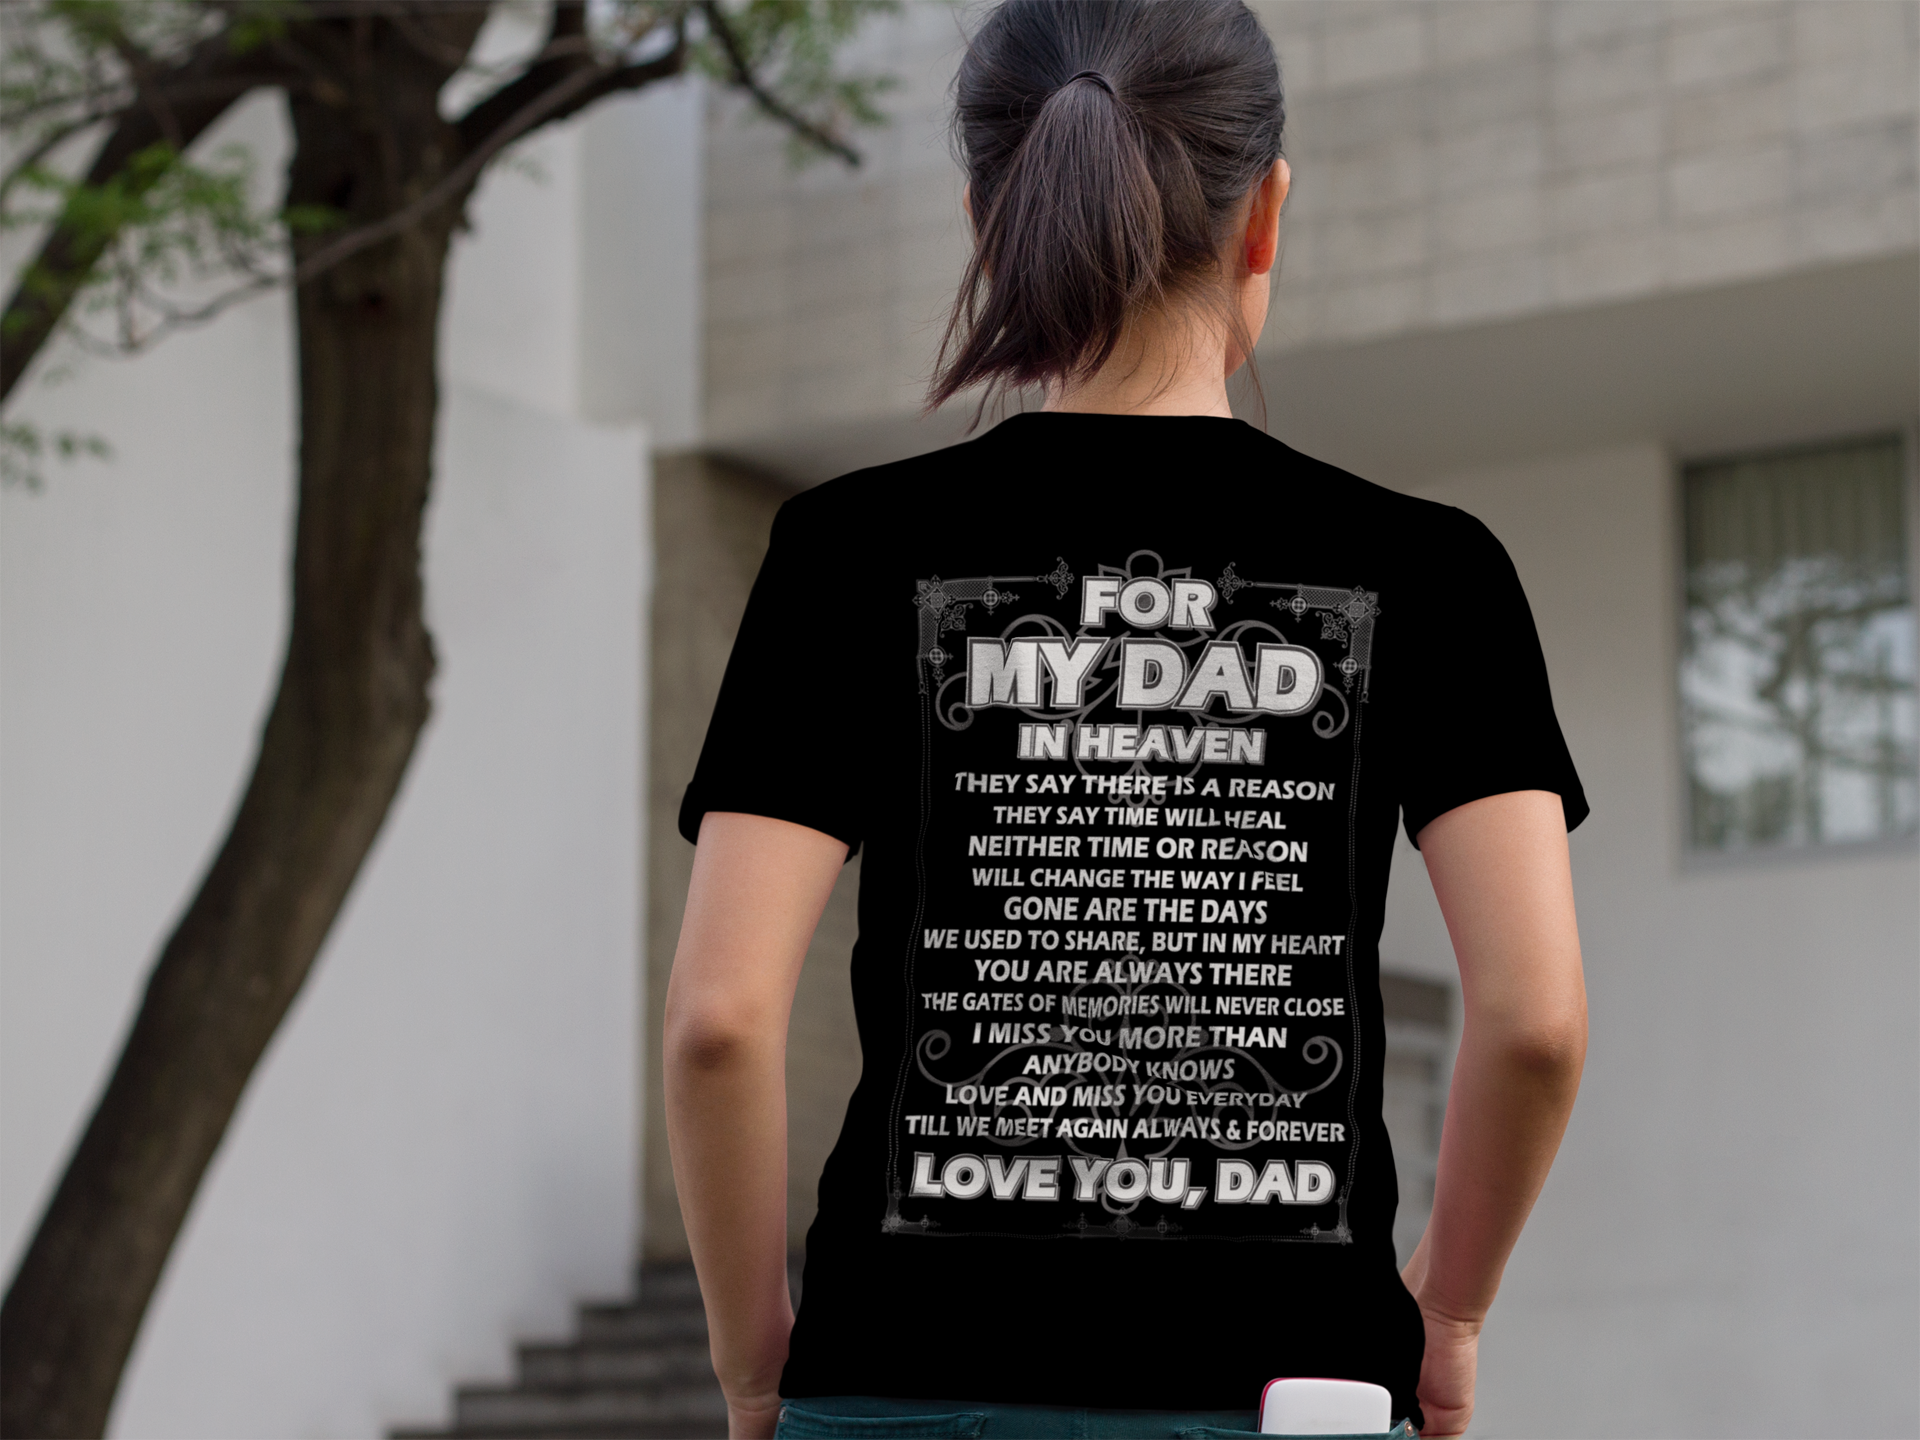 6d776bad Fathers Day Memorial TShirts | Teespring Dad in Heaven Shirt, Memorial  Tshirt, Dad Gift, Fathers Day, RIP Shirt, Memorial Shirt, RIP Dad Shirt,  Gifts for ...